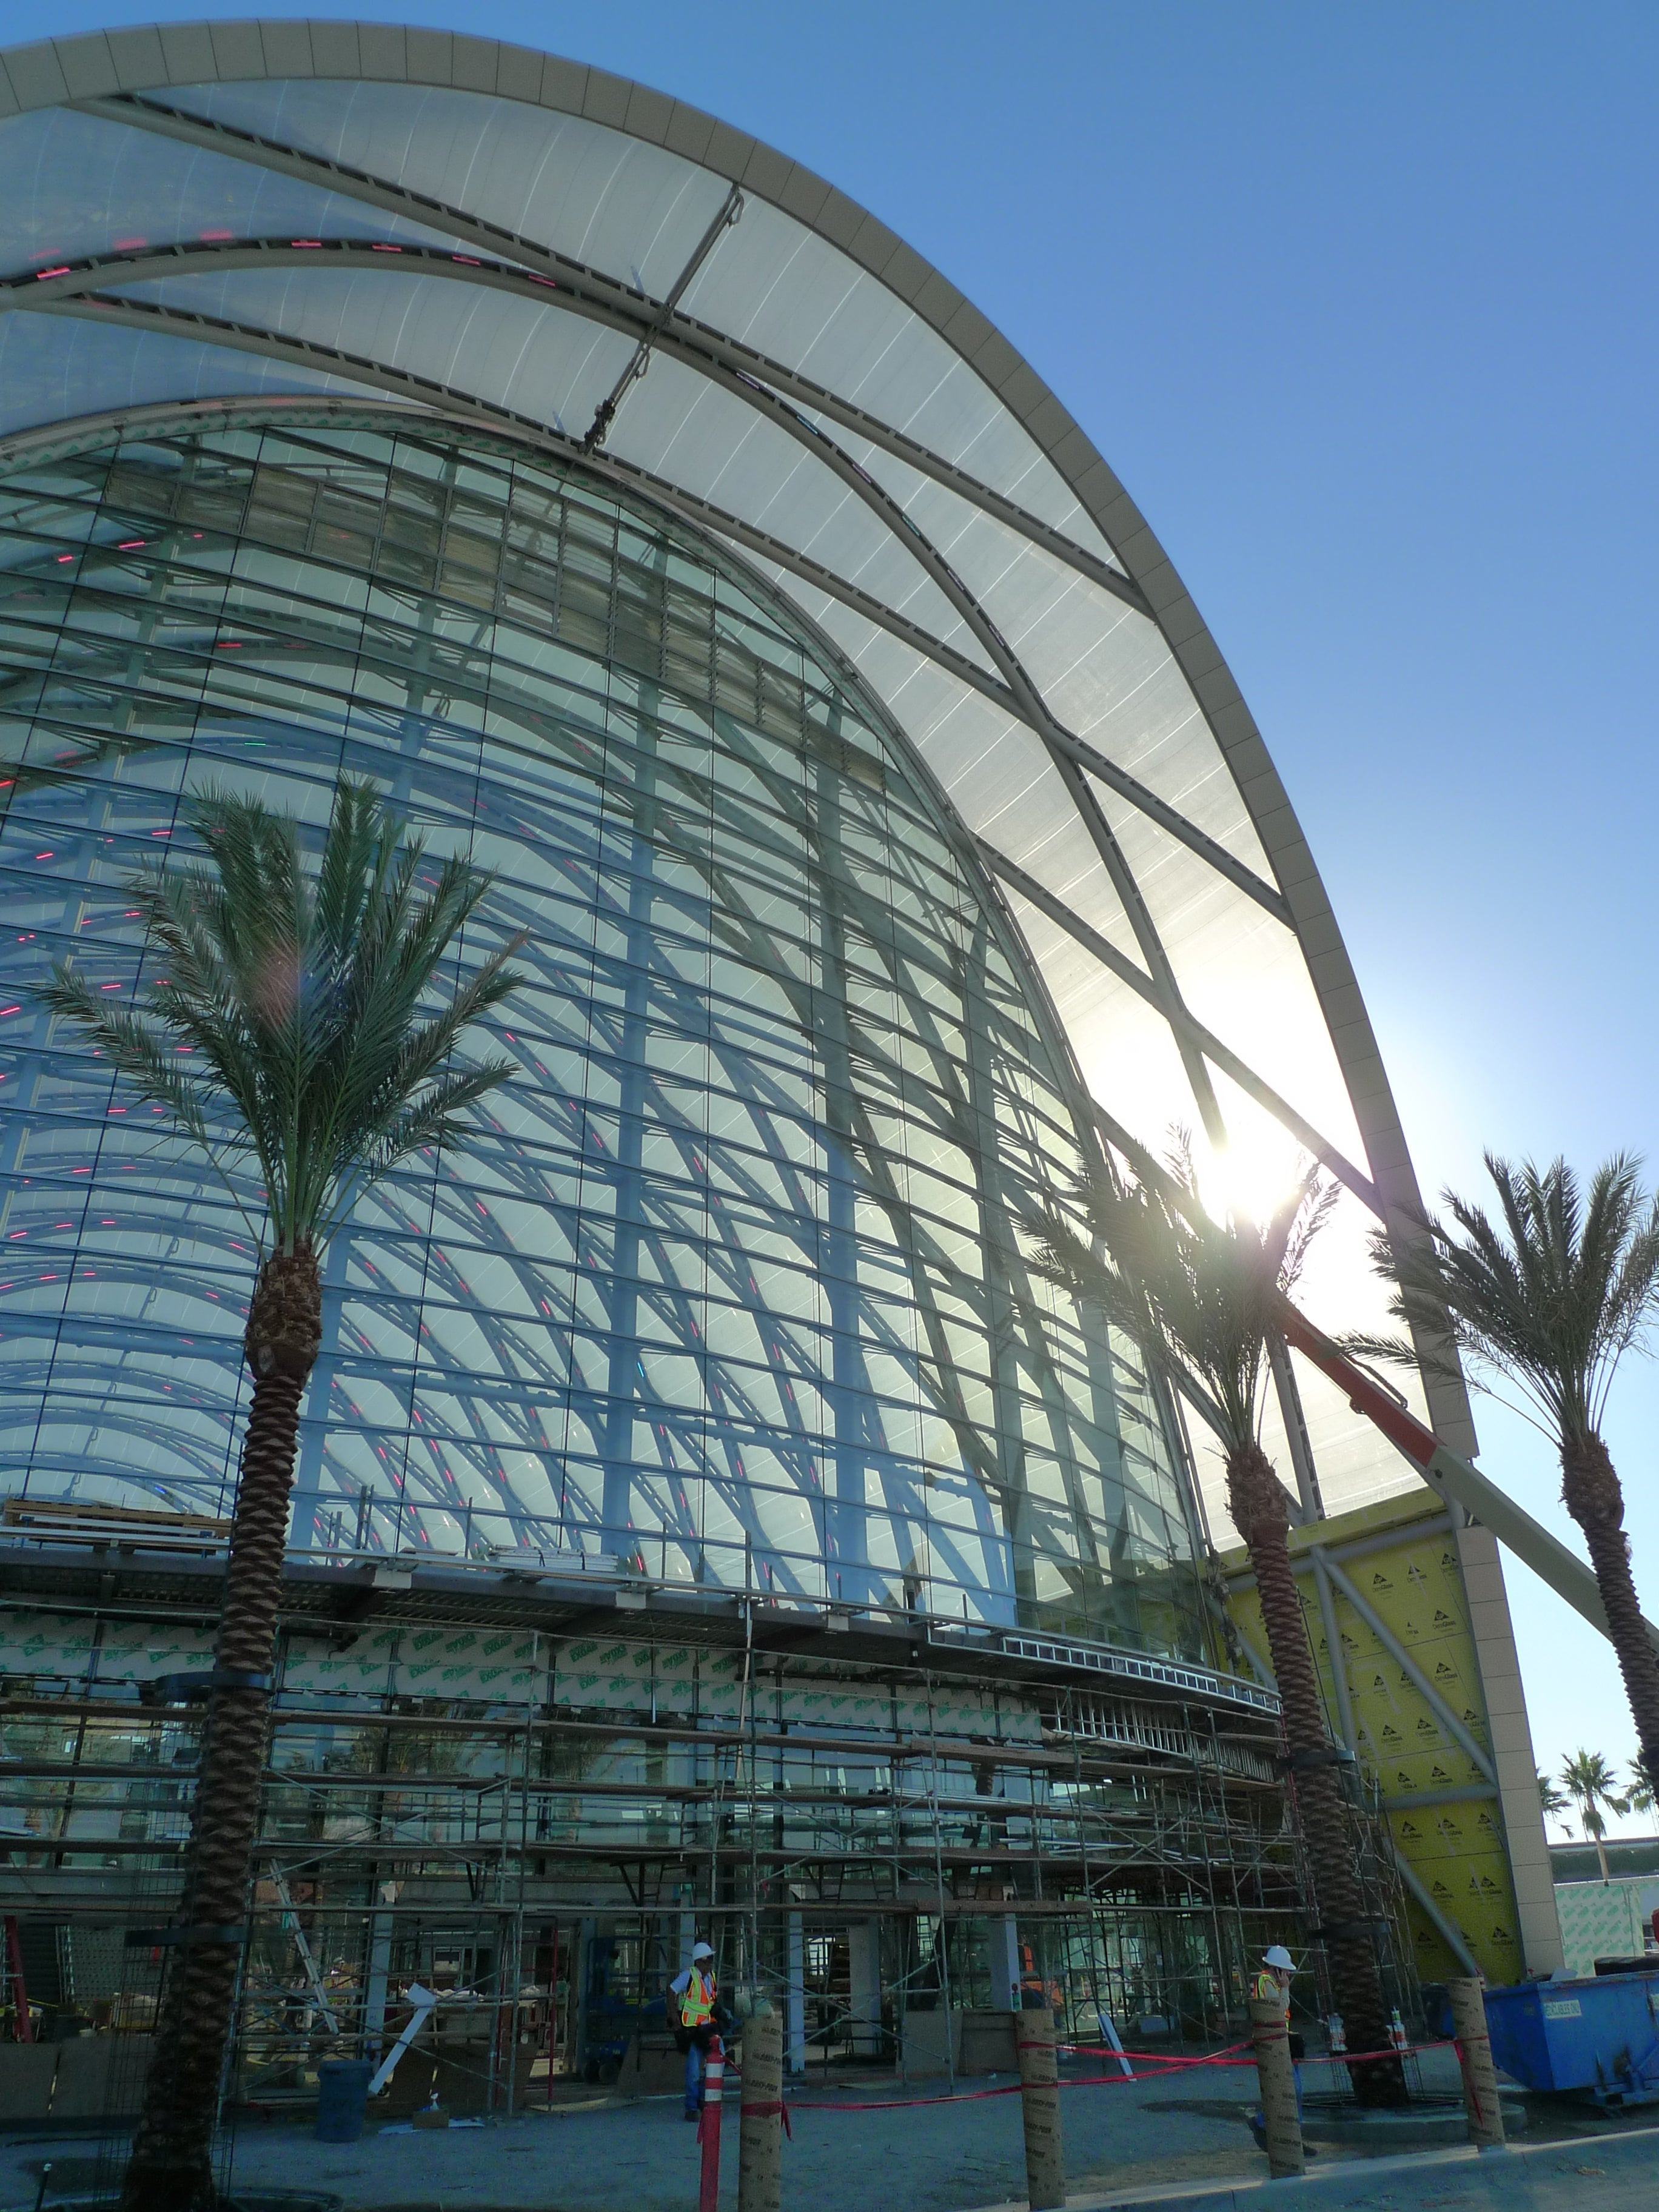 A Tour of the Futuristic Roof on California's High-Speed Rail Station